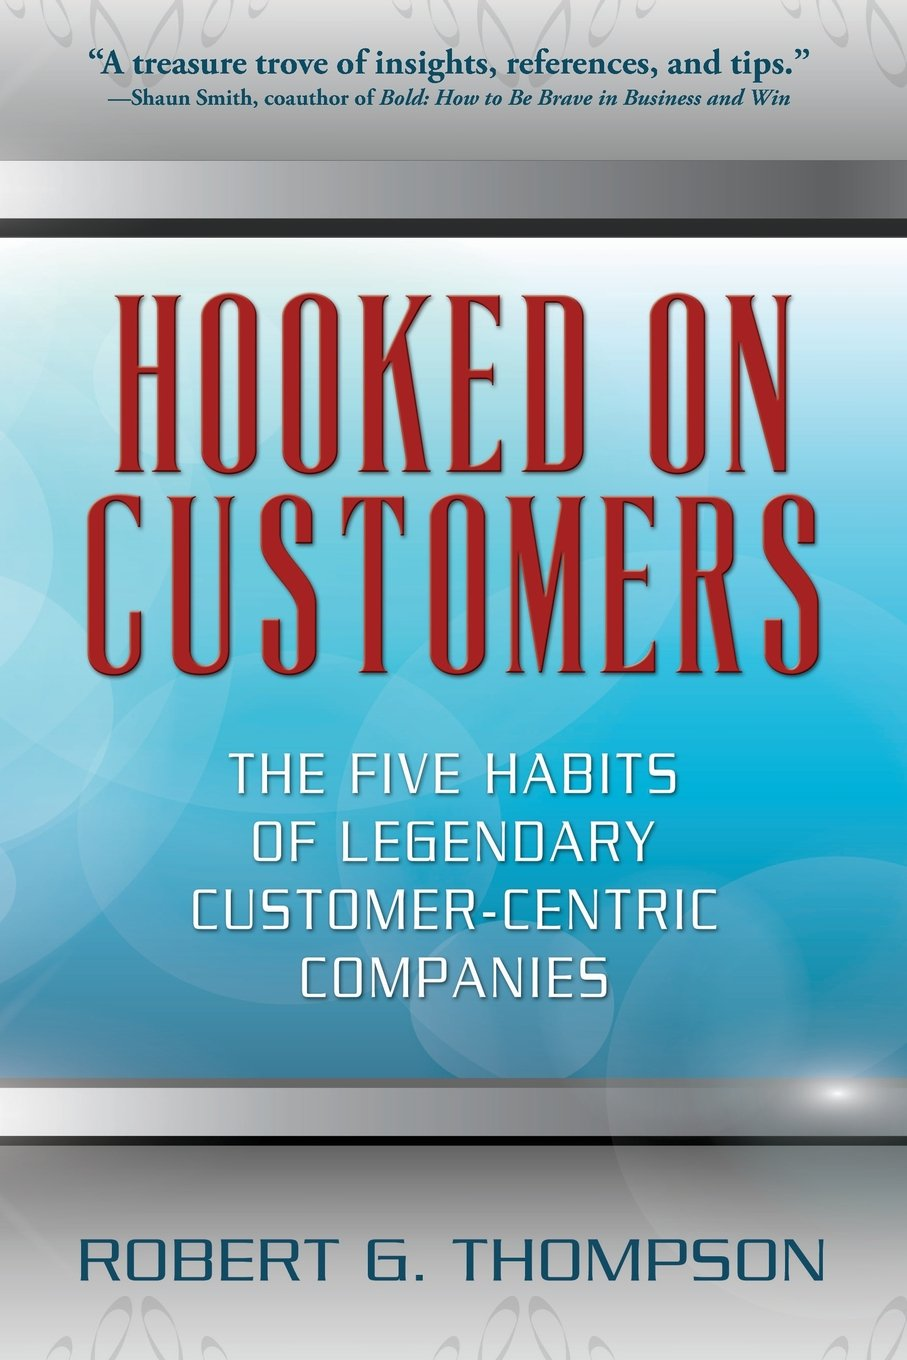 Hooked On Customers: The Five Habits of Legendary Customer-Centric Companies PDF